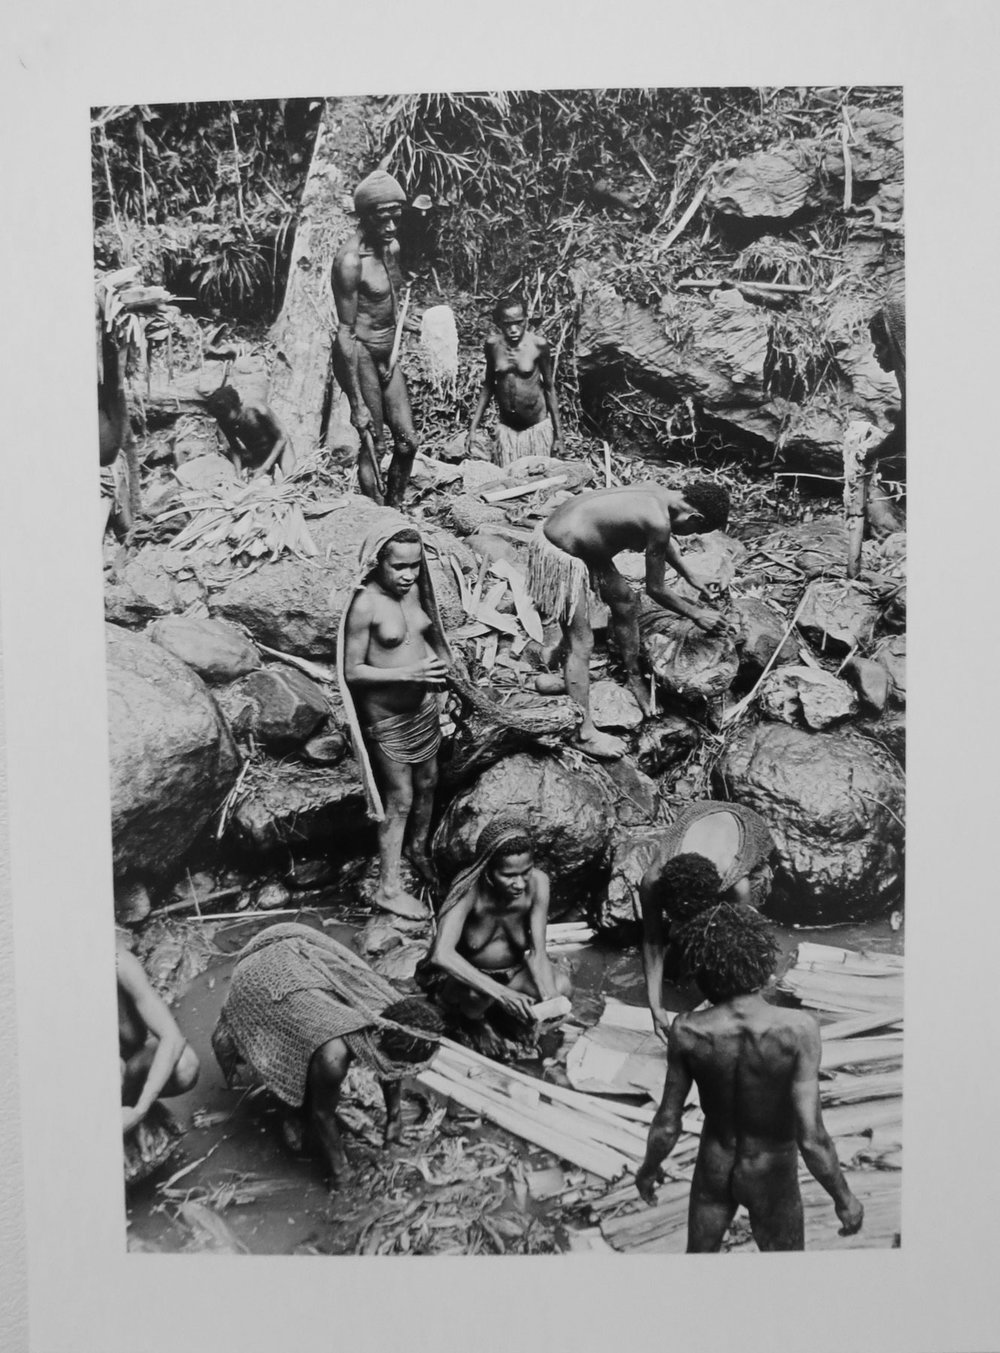 75. Richard Woldendorp, 'Making Salt, West Irian Jaya, Indonesia', BW203b, taken and printed in 1971, Vintage Print